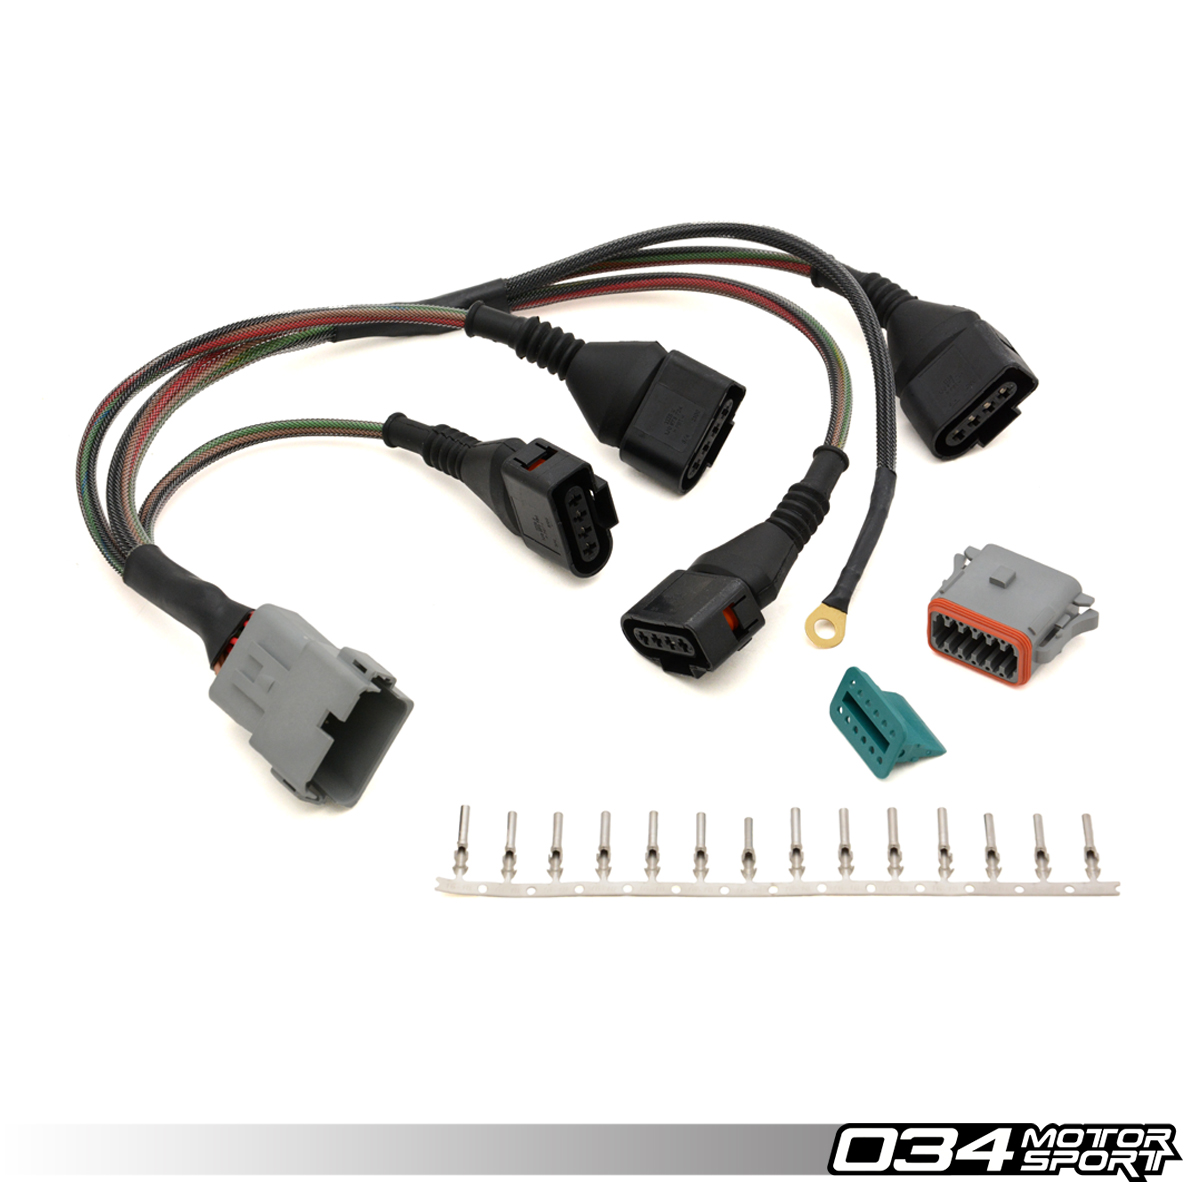 repair update harness audi volkswagen 18t with 4 wire coils 034motorsport 034 701 0004 2 repair update harness, audi volkswagen 1 8t with 4 wire coils Miata Coil Pack Wiring Diagram at sewacar.co